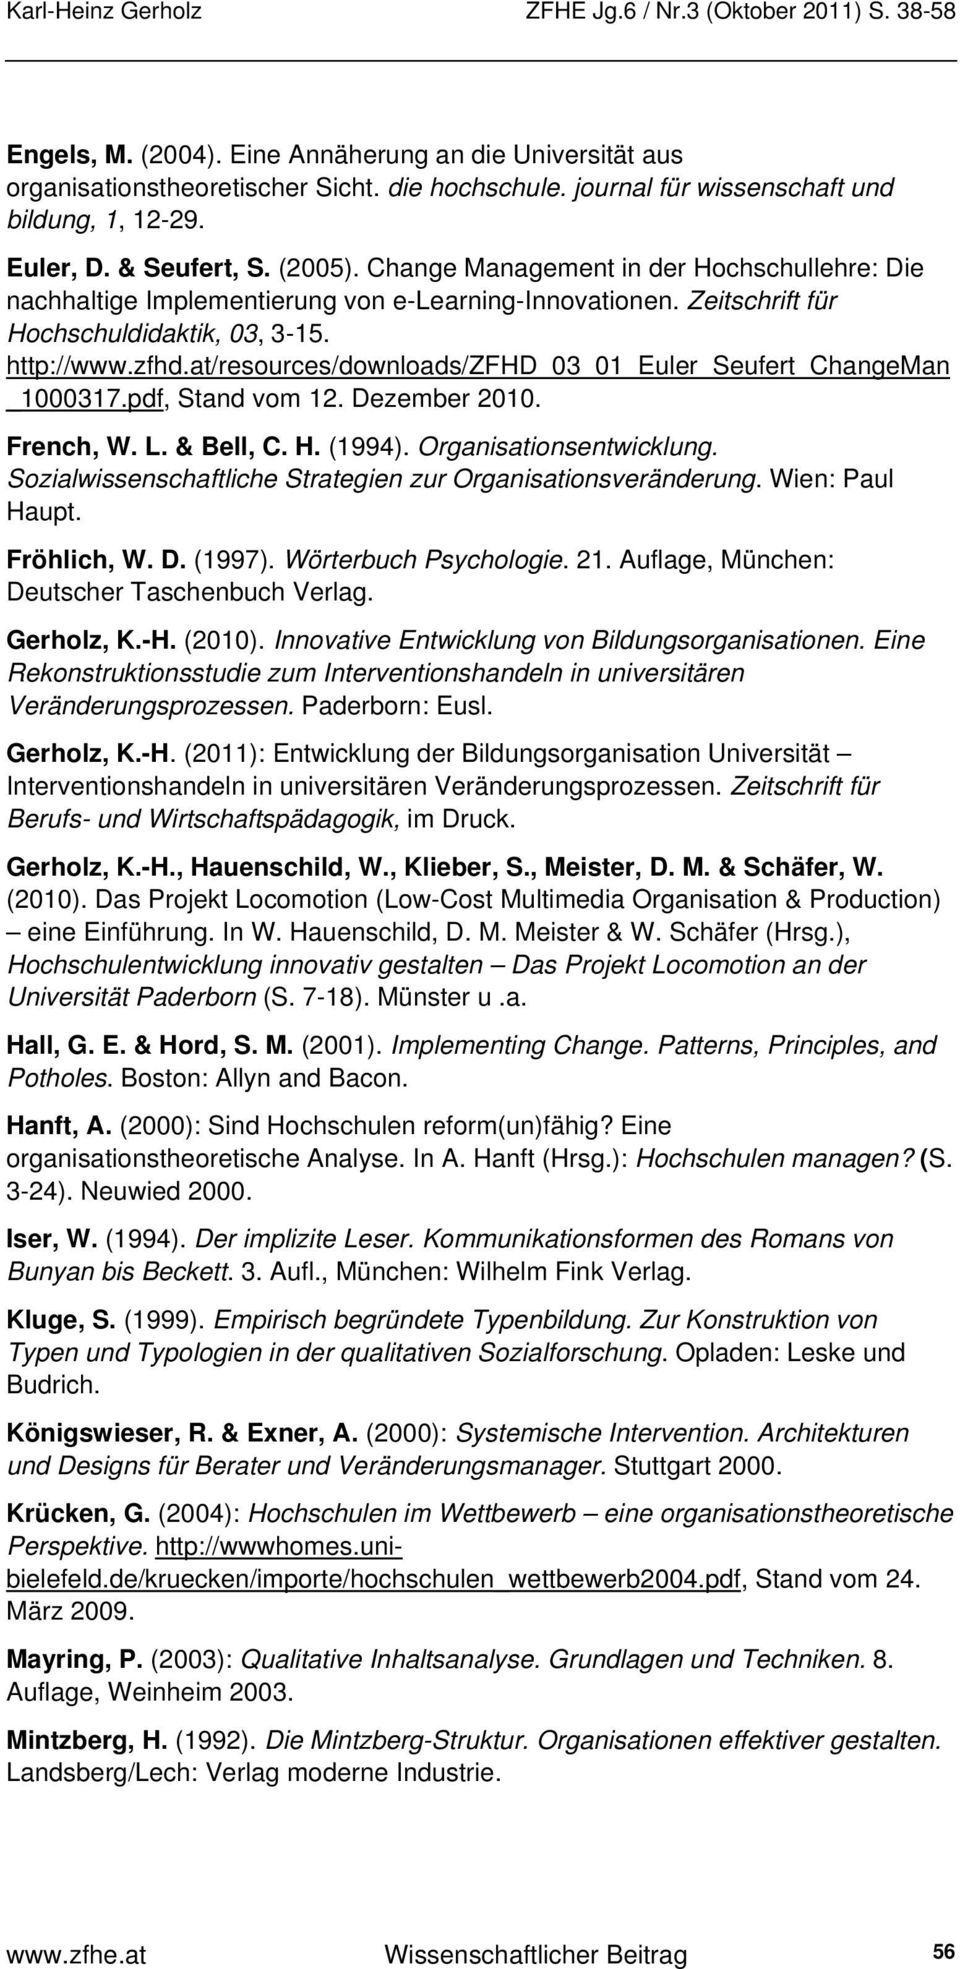 at/resources/downloads/zfhd_03_01_euler_seufert_changeman _1000317.pdf, Stand vom 12. Dezember 2010. French, W. L. & Bell, C. H. (1994). Organisationsentwicklung.